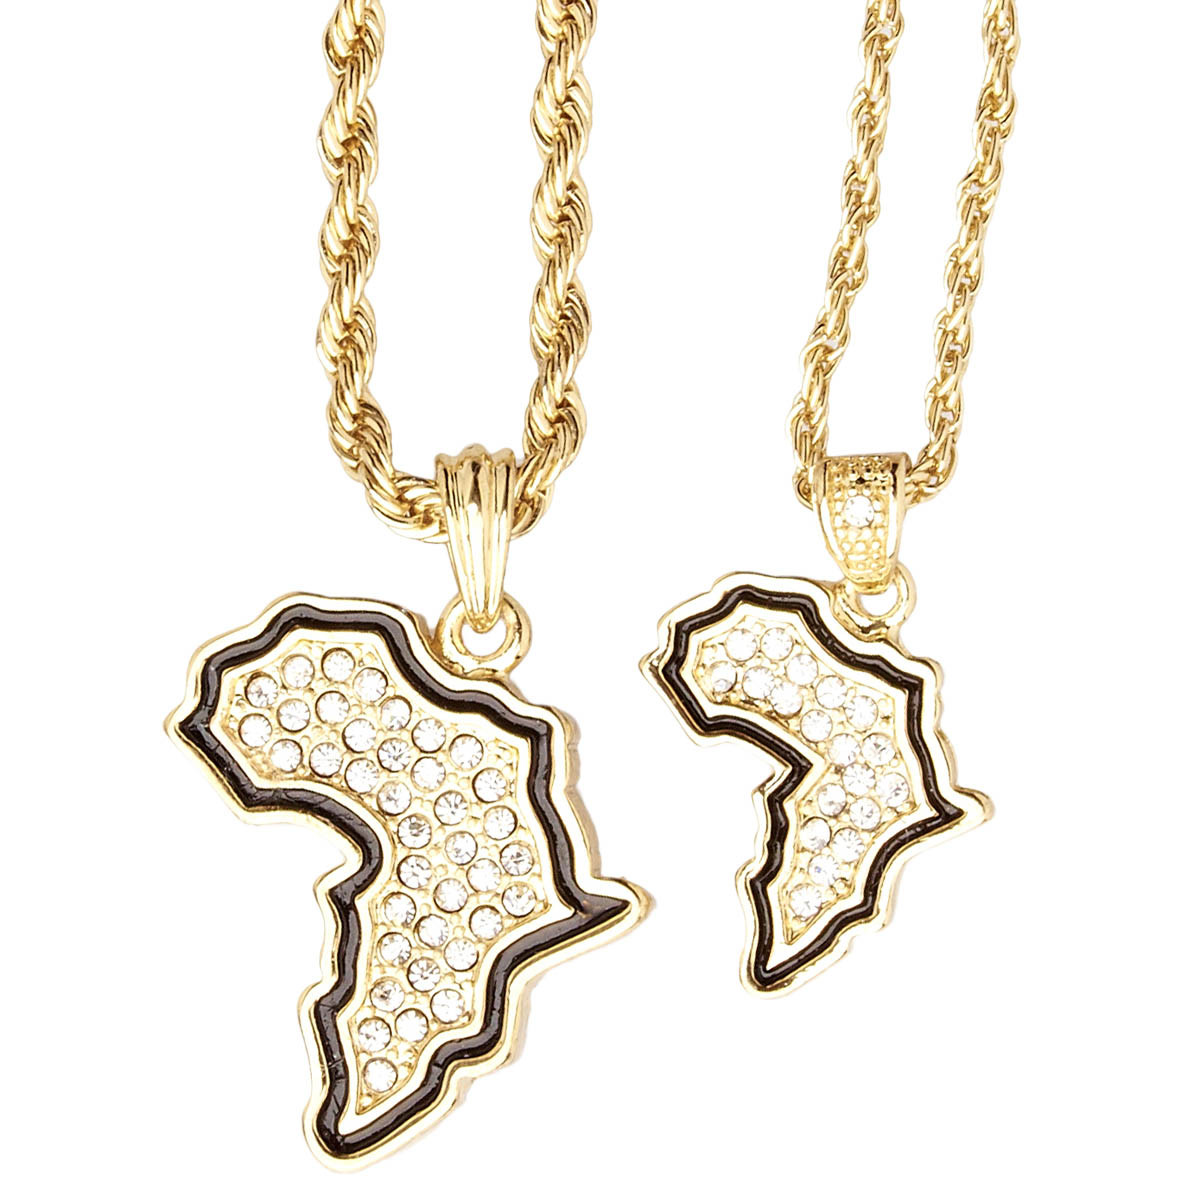 Iced Out Bling Mini Pendant Chain Set - 2 x AFRICA gold - Uni / zlatá